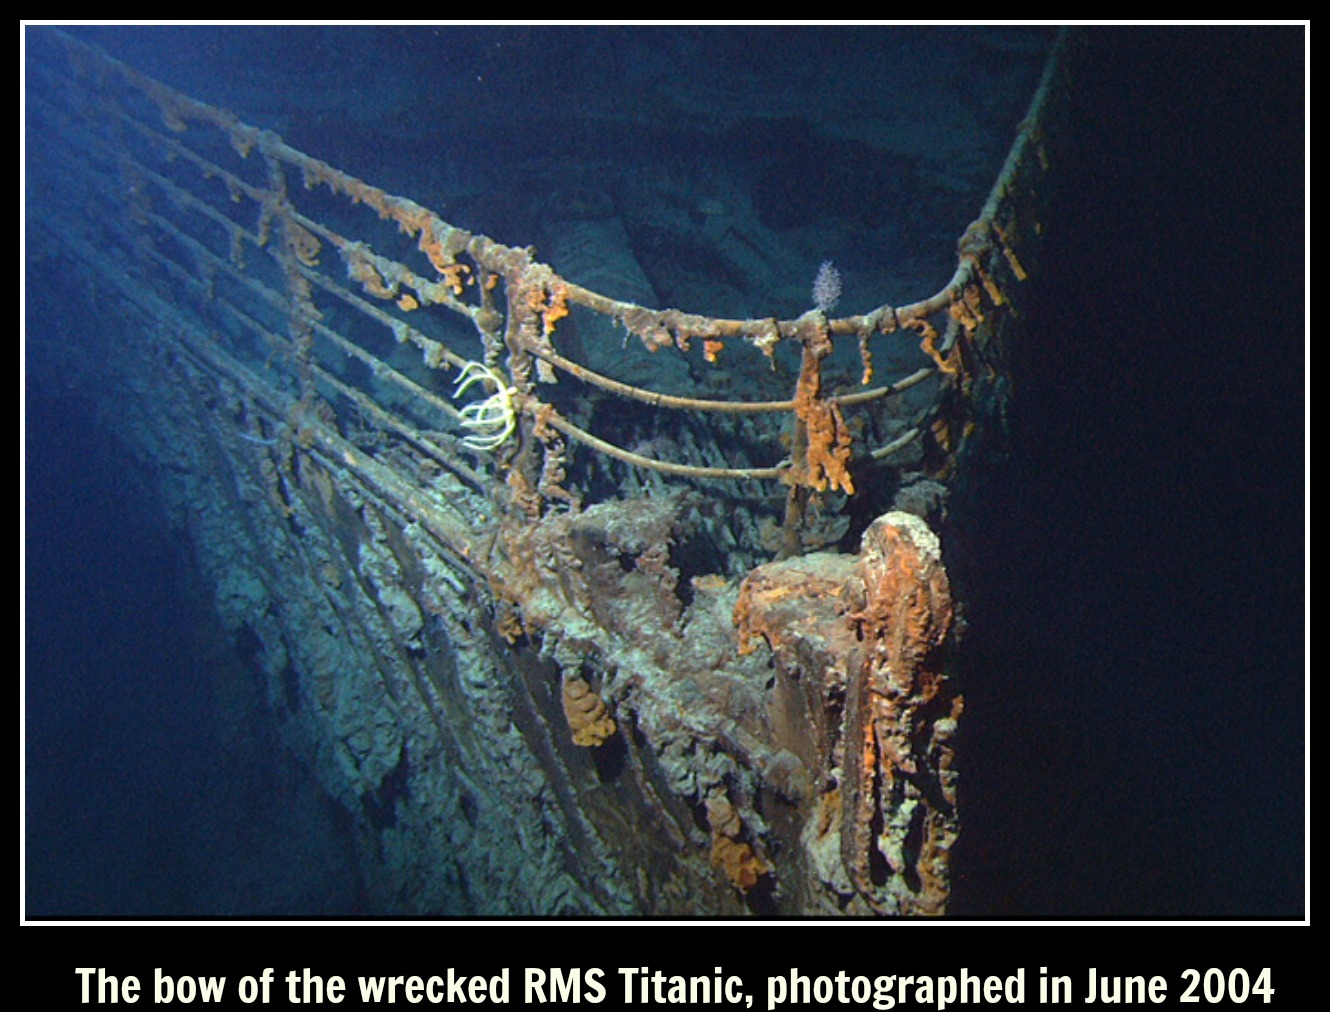 The bow of the wrecked RMS Titanic, photographed in June 2004 text